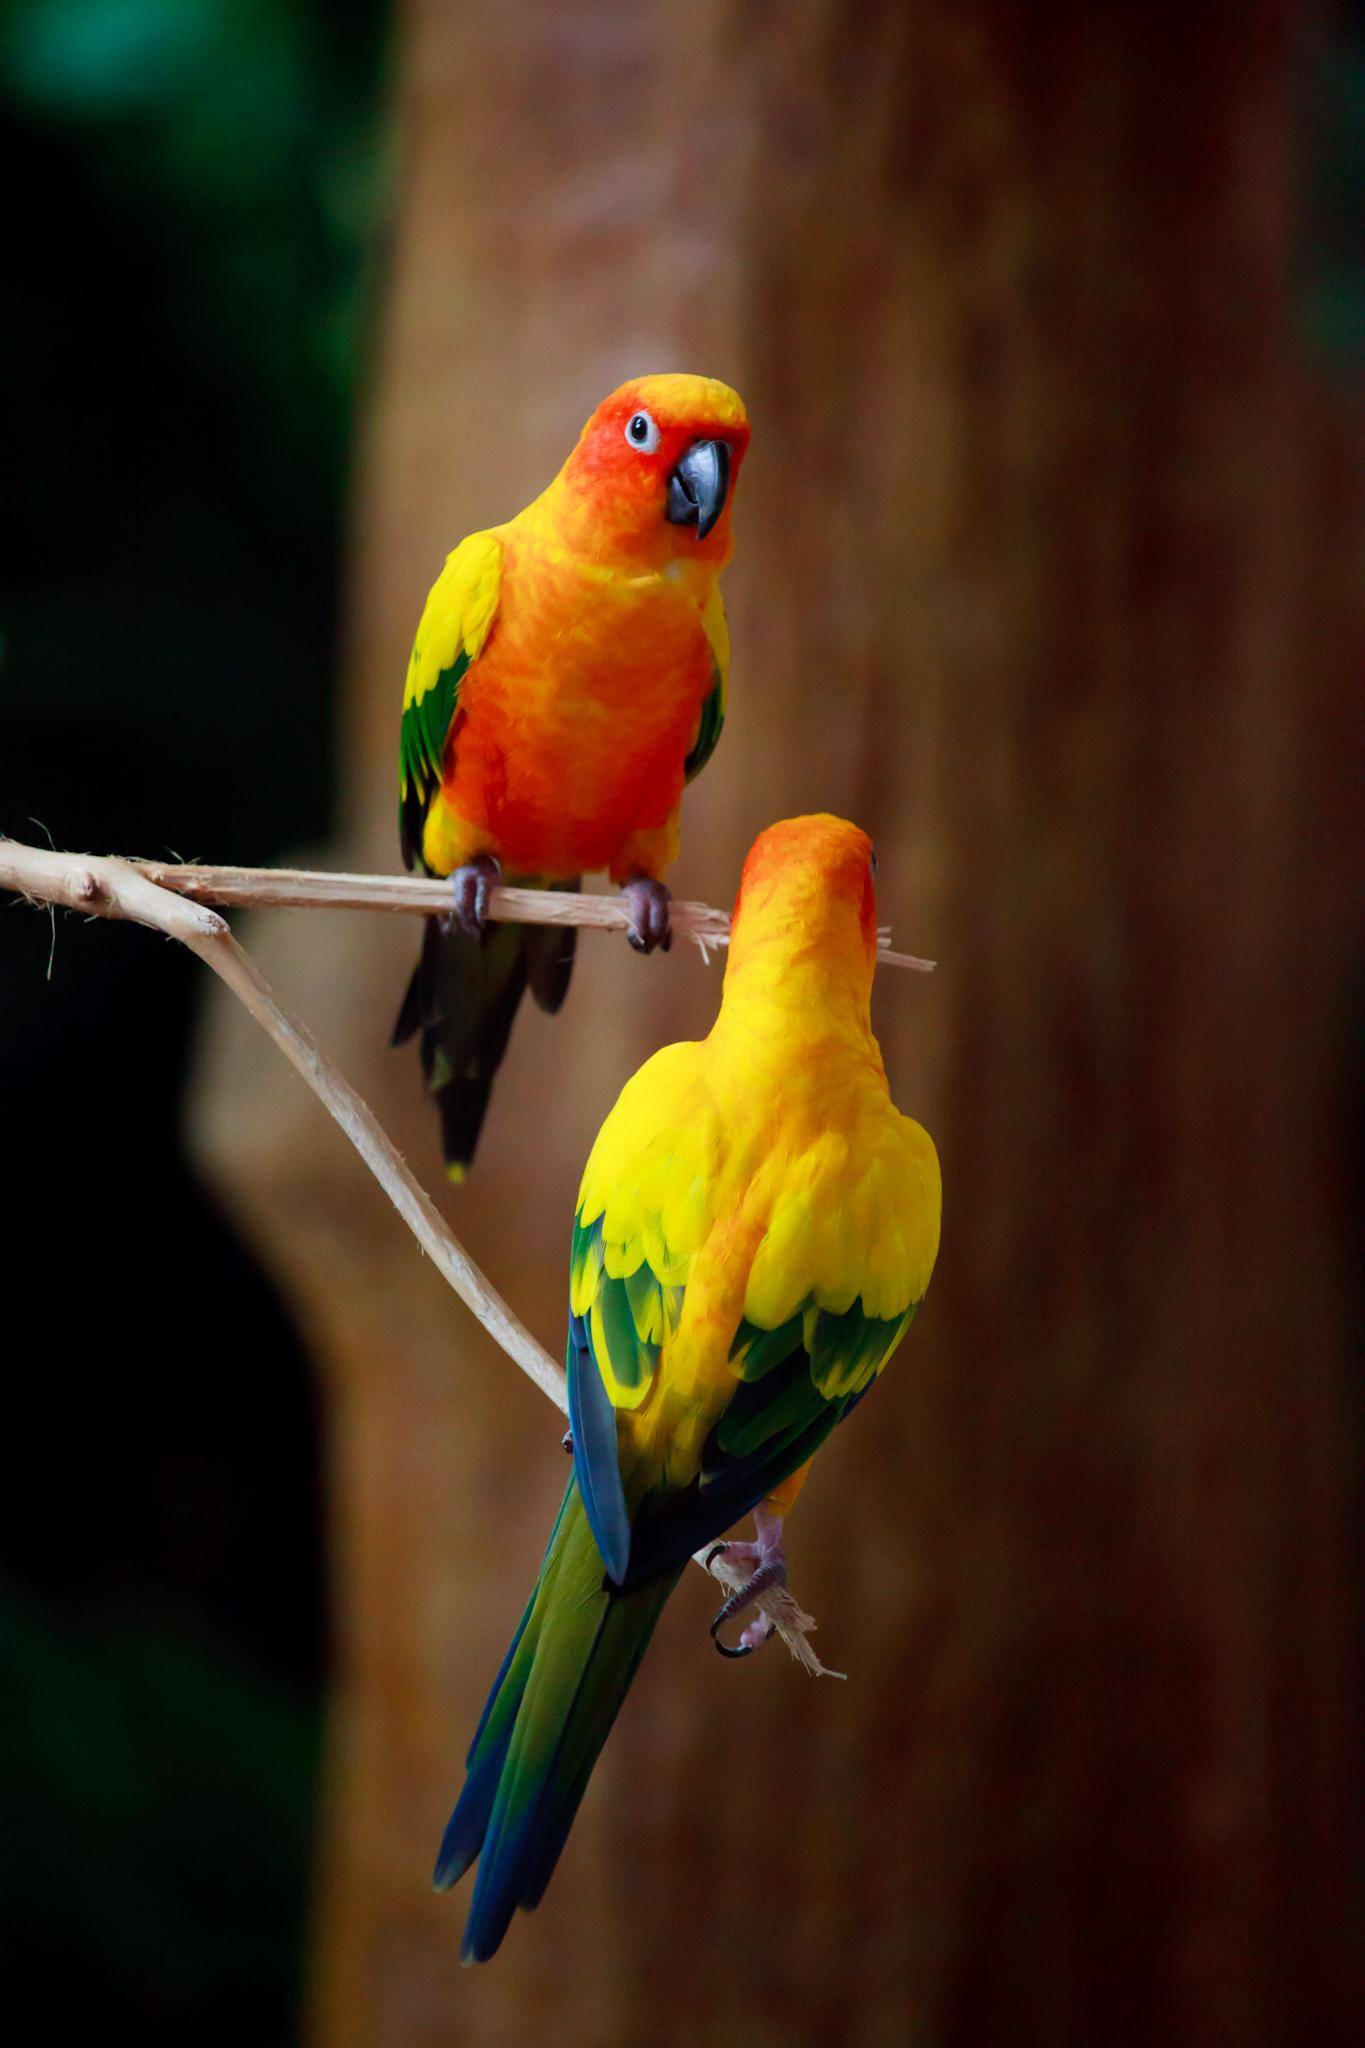 bird parrots eater tree branch colorful animal